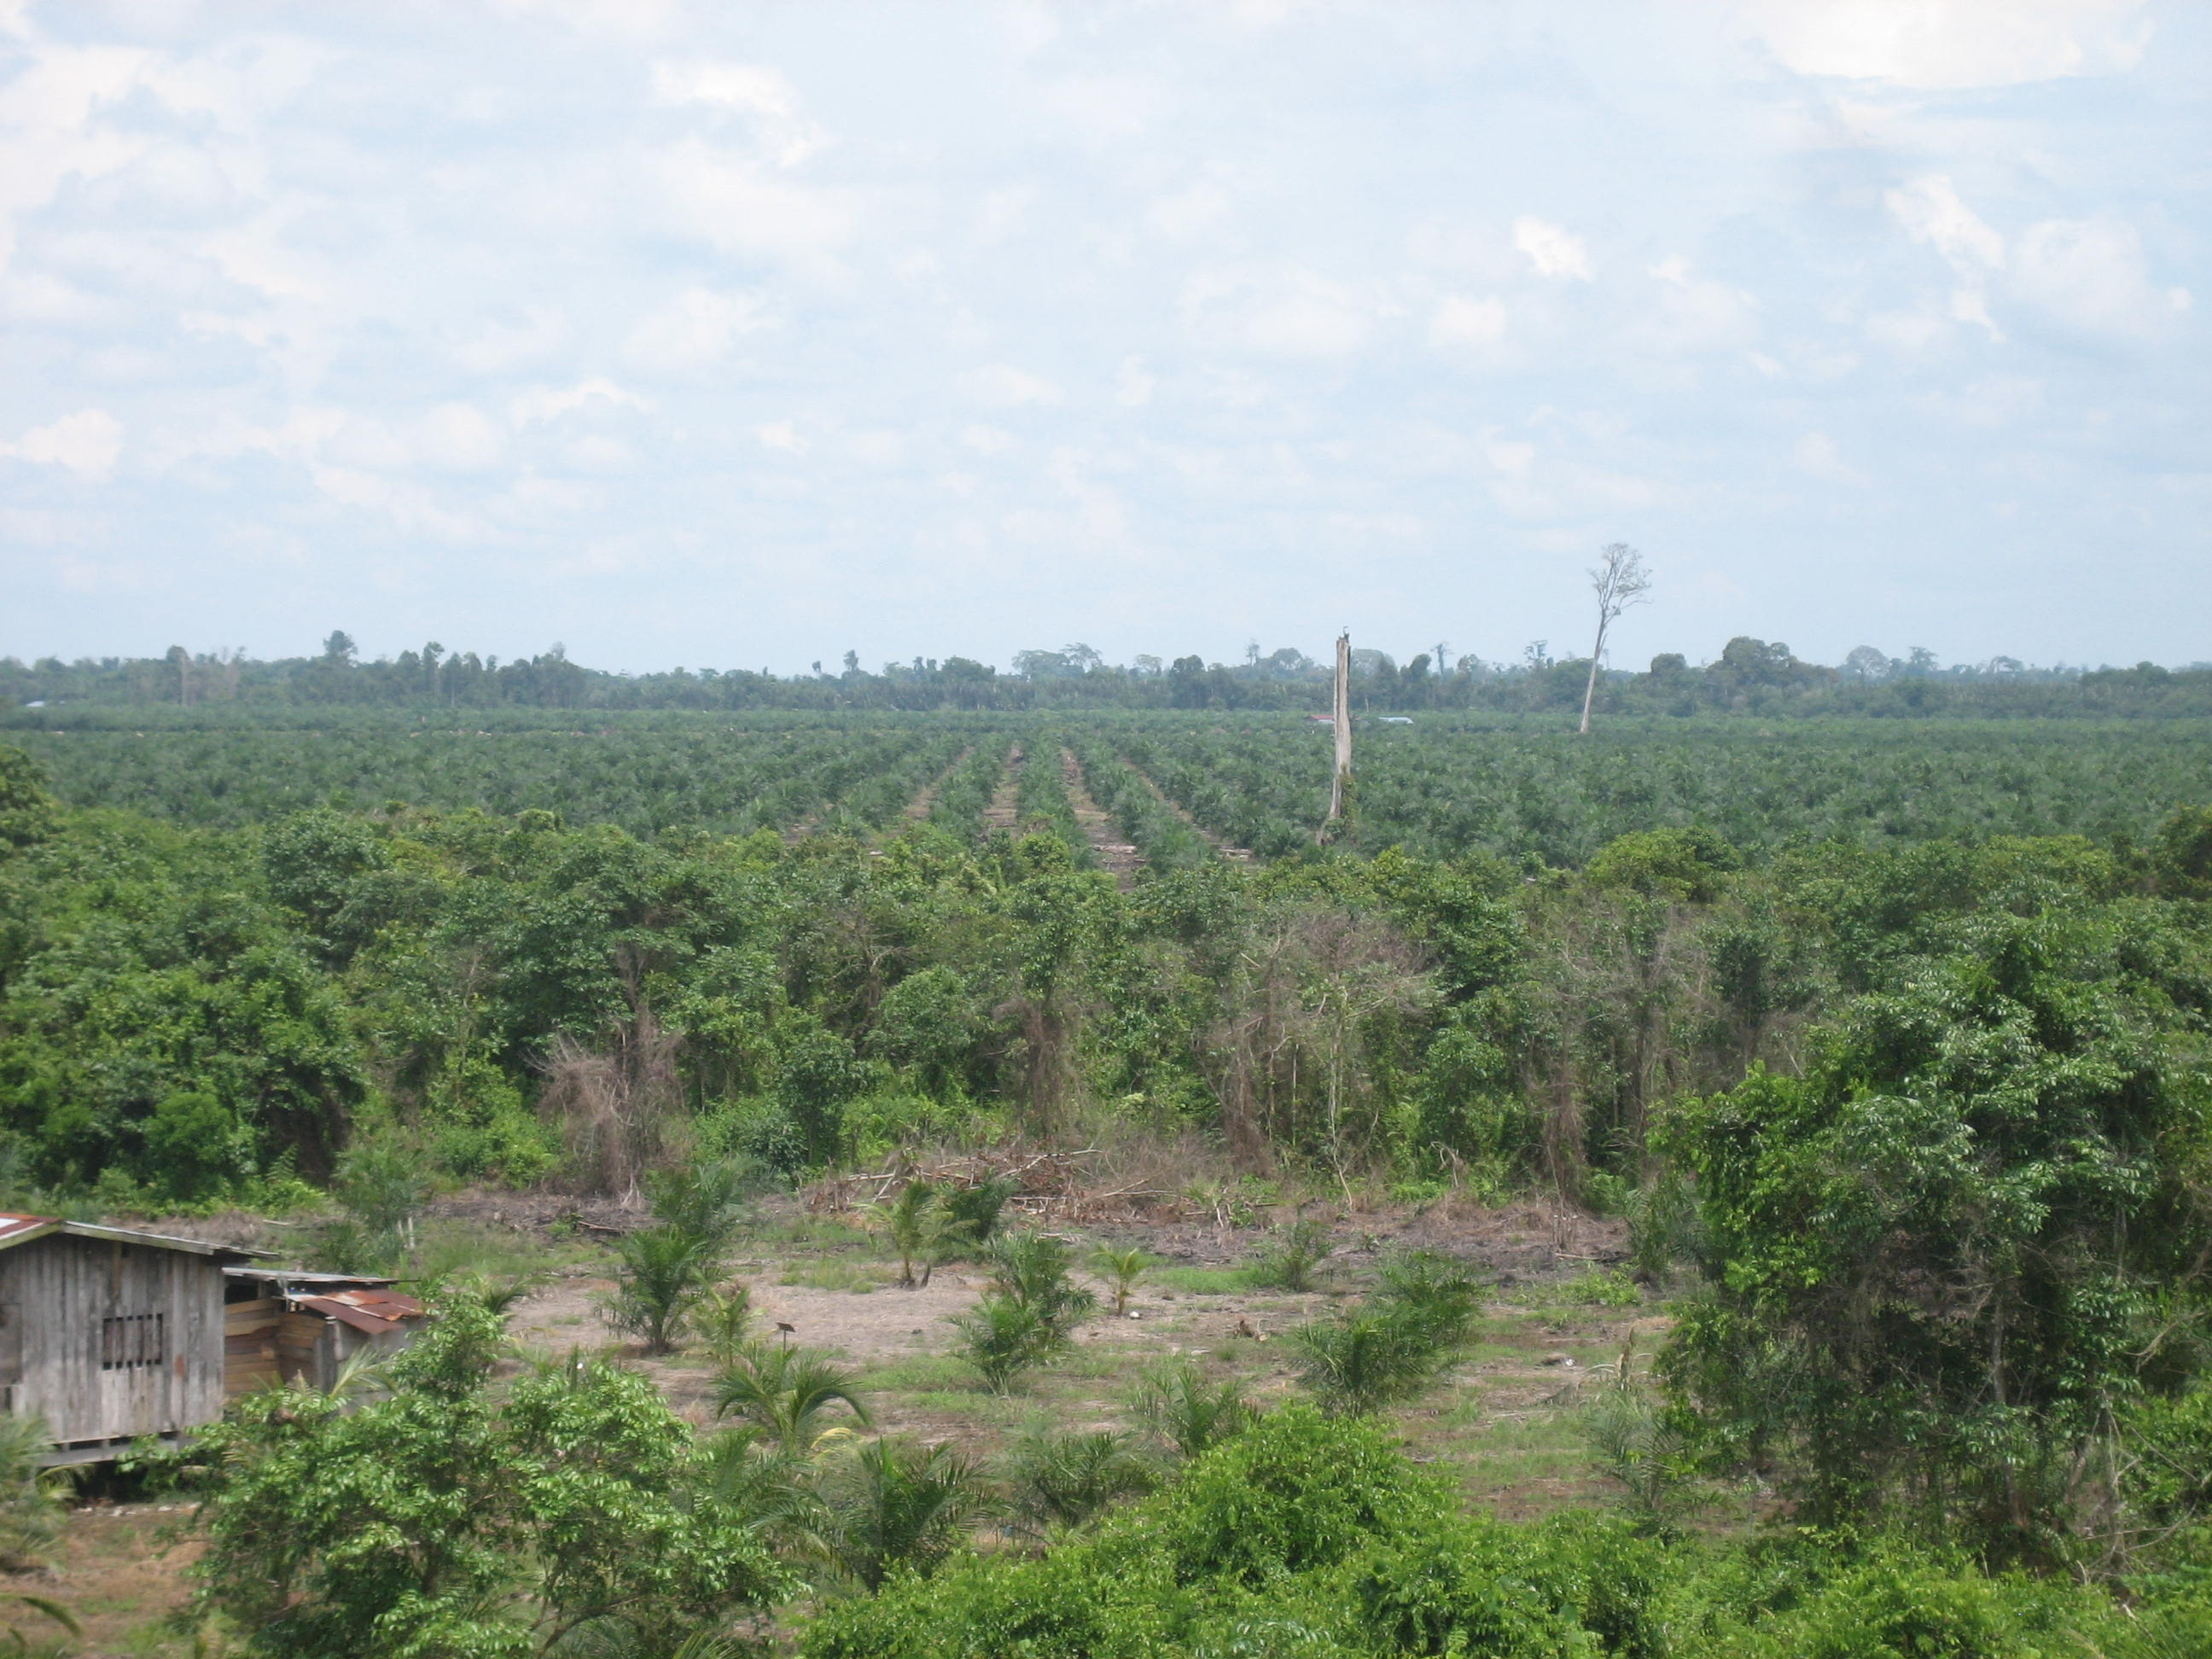 Peatland area converted into oil palm plantation in Sarawak